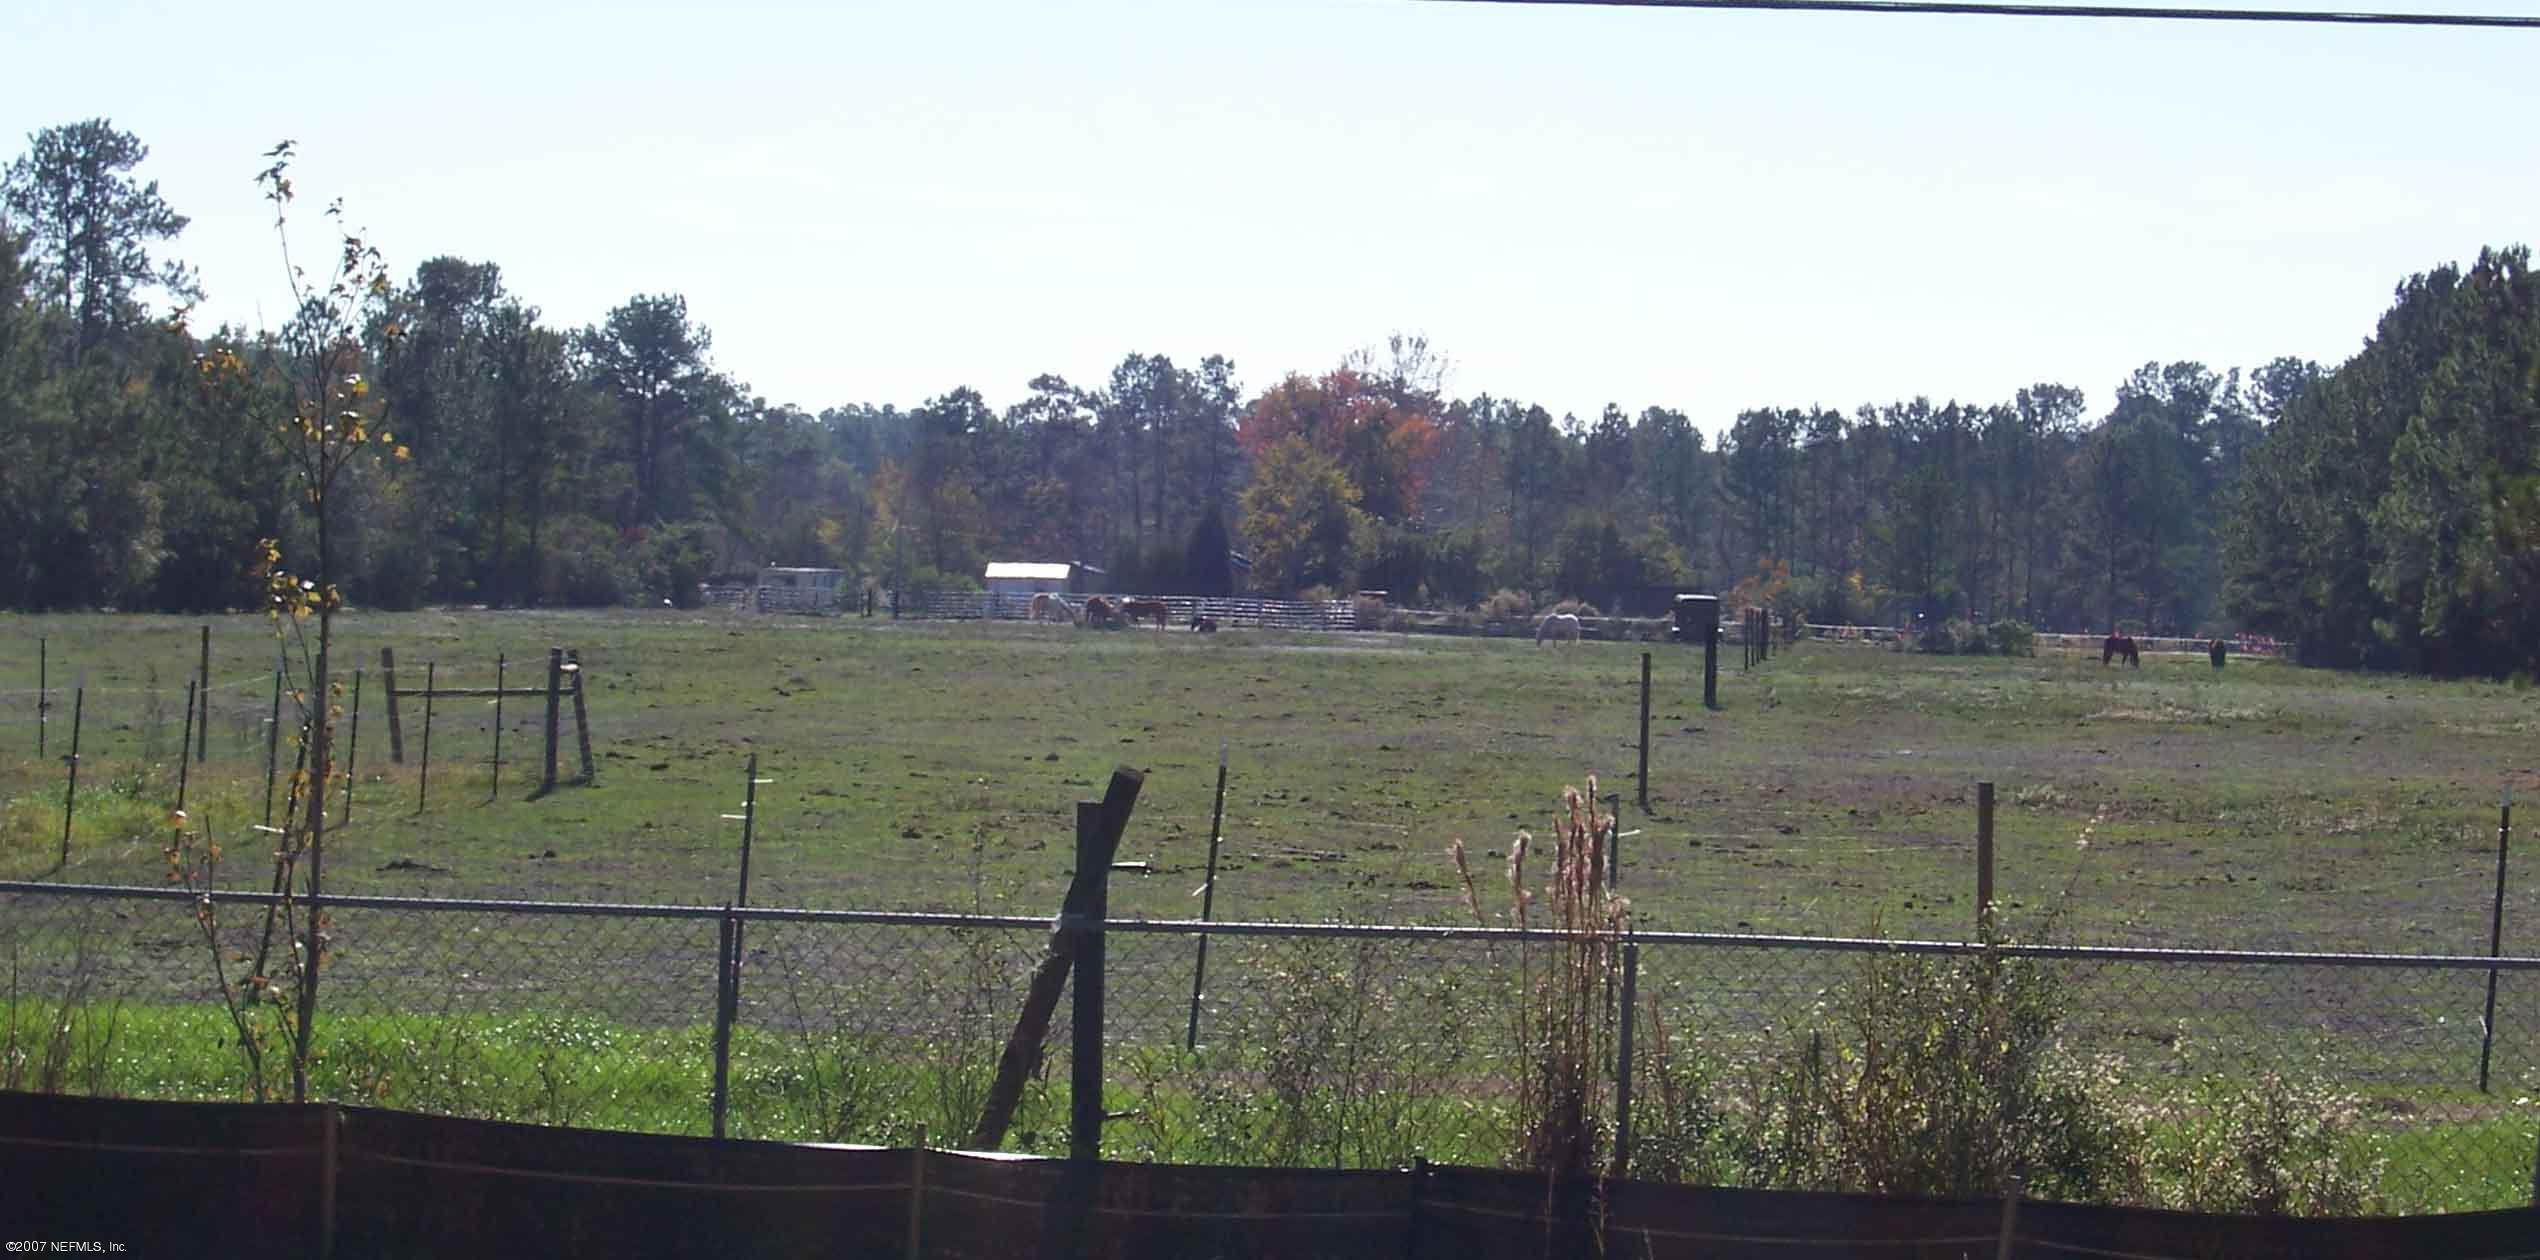 3359 COUNTY RD 220, MIDDLEBURG, FLORIDA 32068, ,Vacant land,For sale,COUNTY RD 220,887842